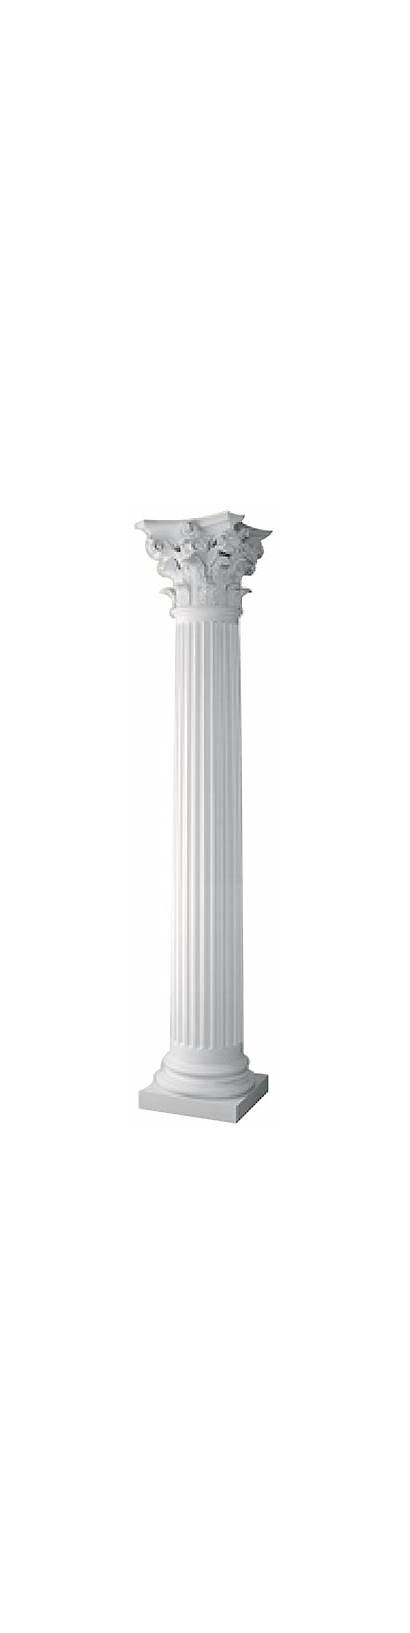 Columns Stone Round Fluted Tapered Column Roman